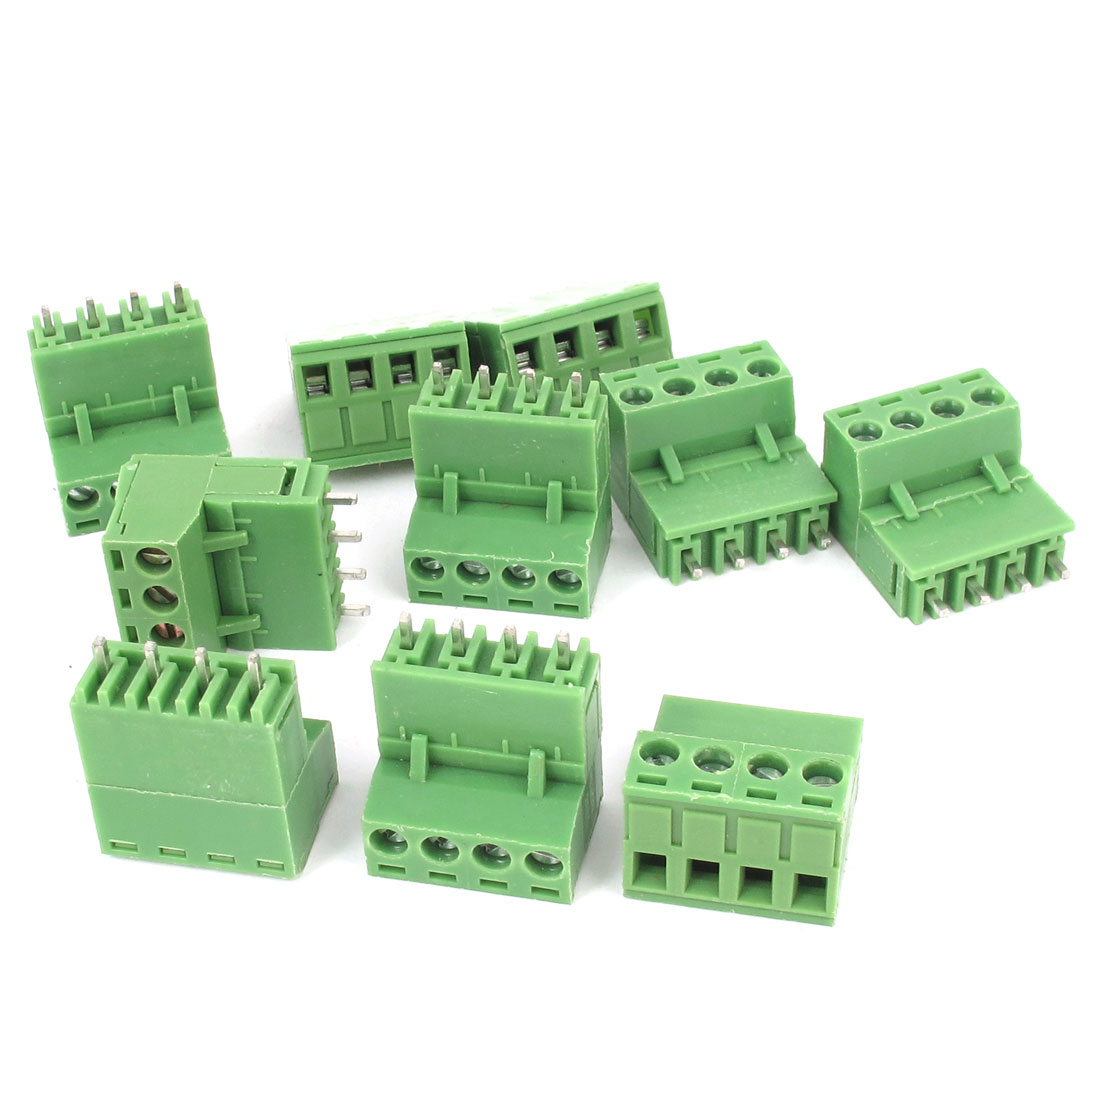 10Pcs 300V 15A 5.08mm Pitch 4-Pin 4-Position PCB Screw Terminal Block Connector